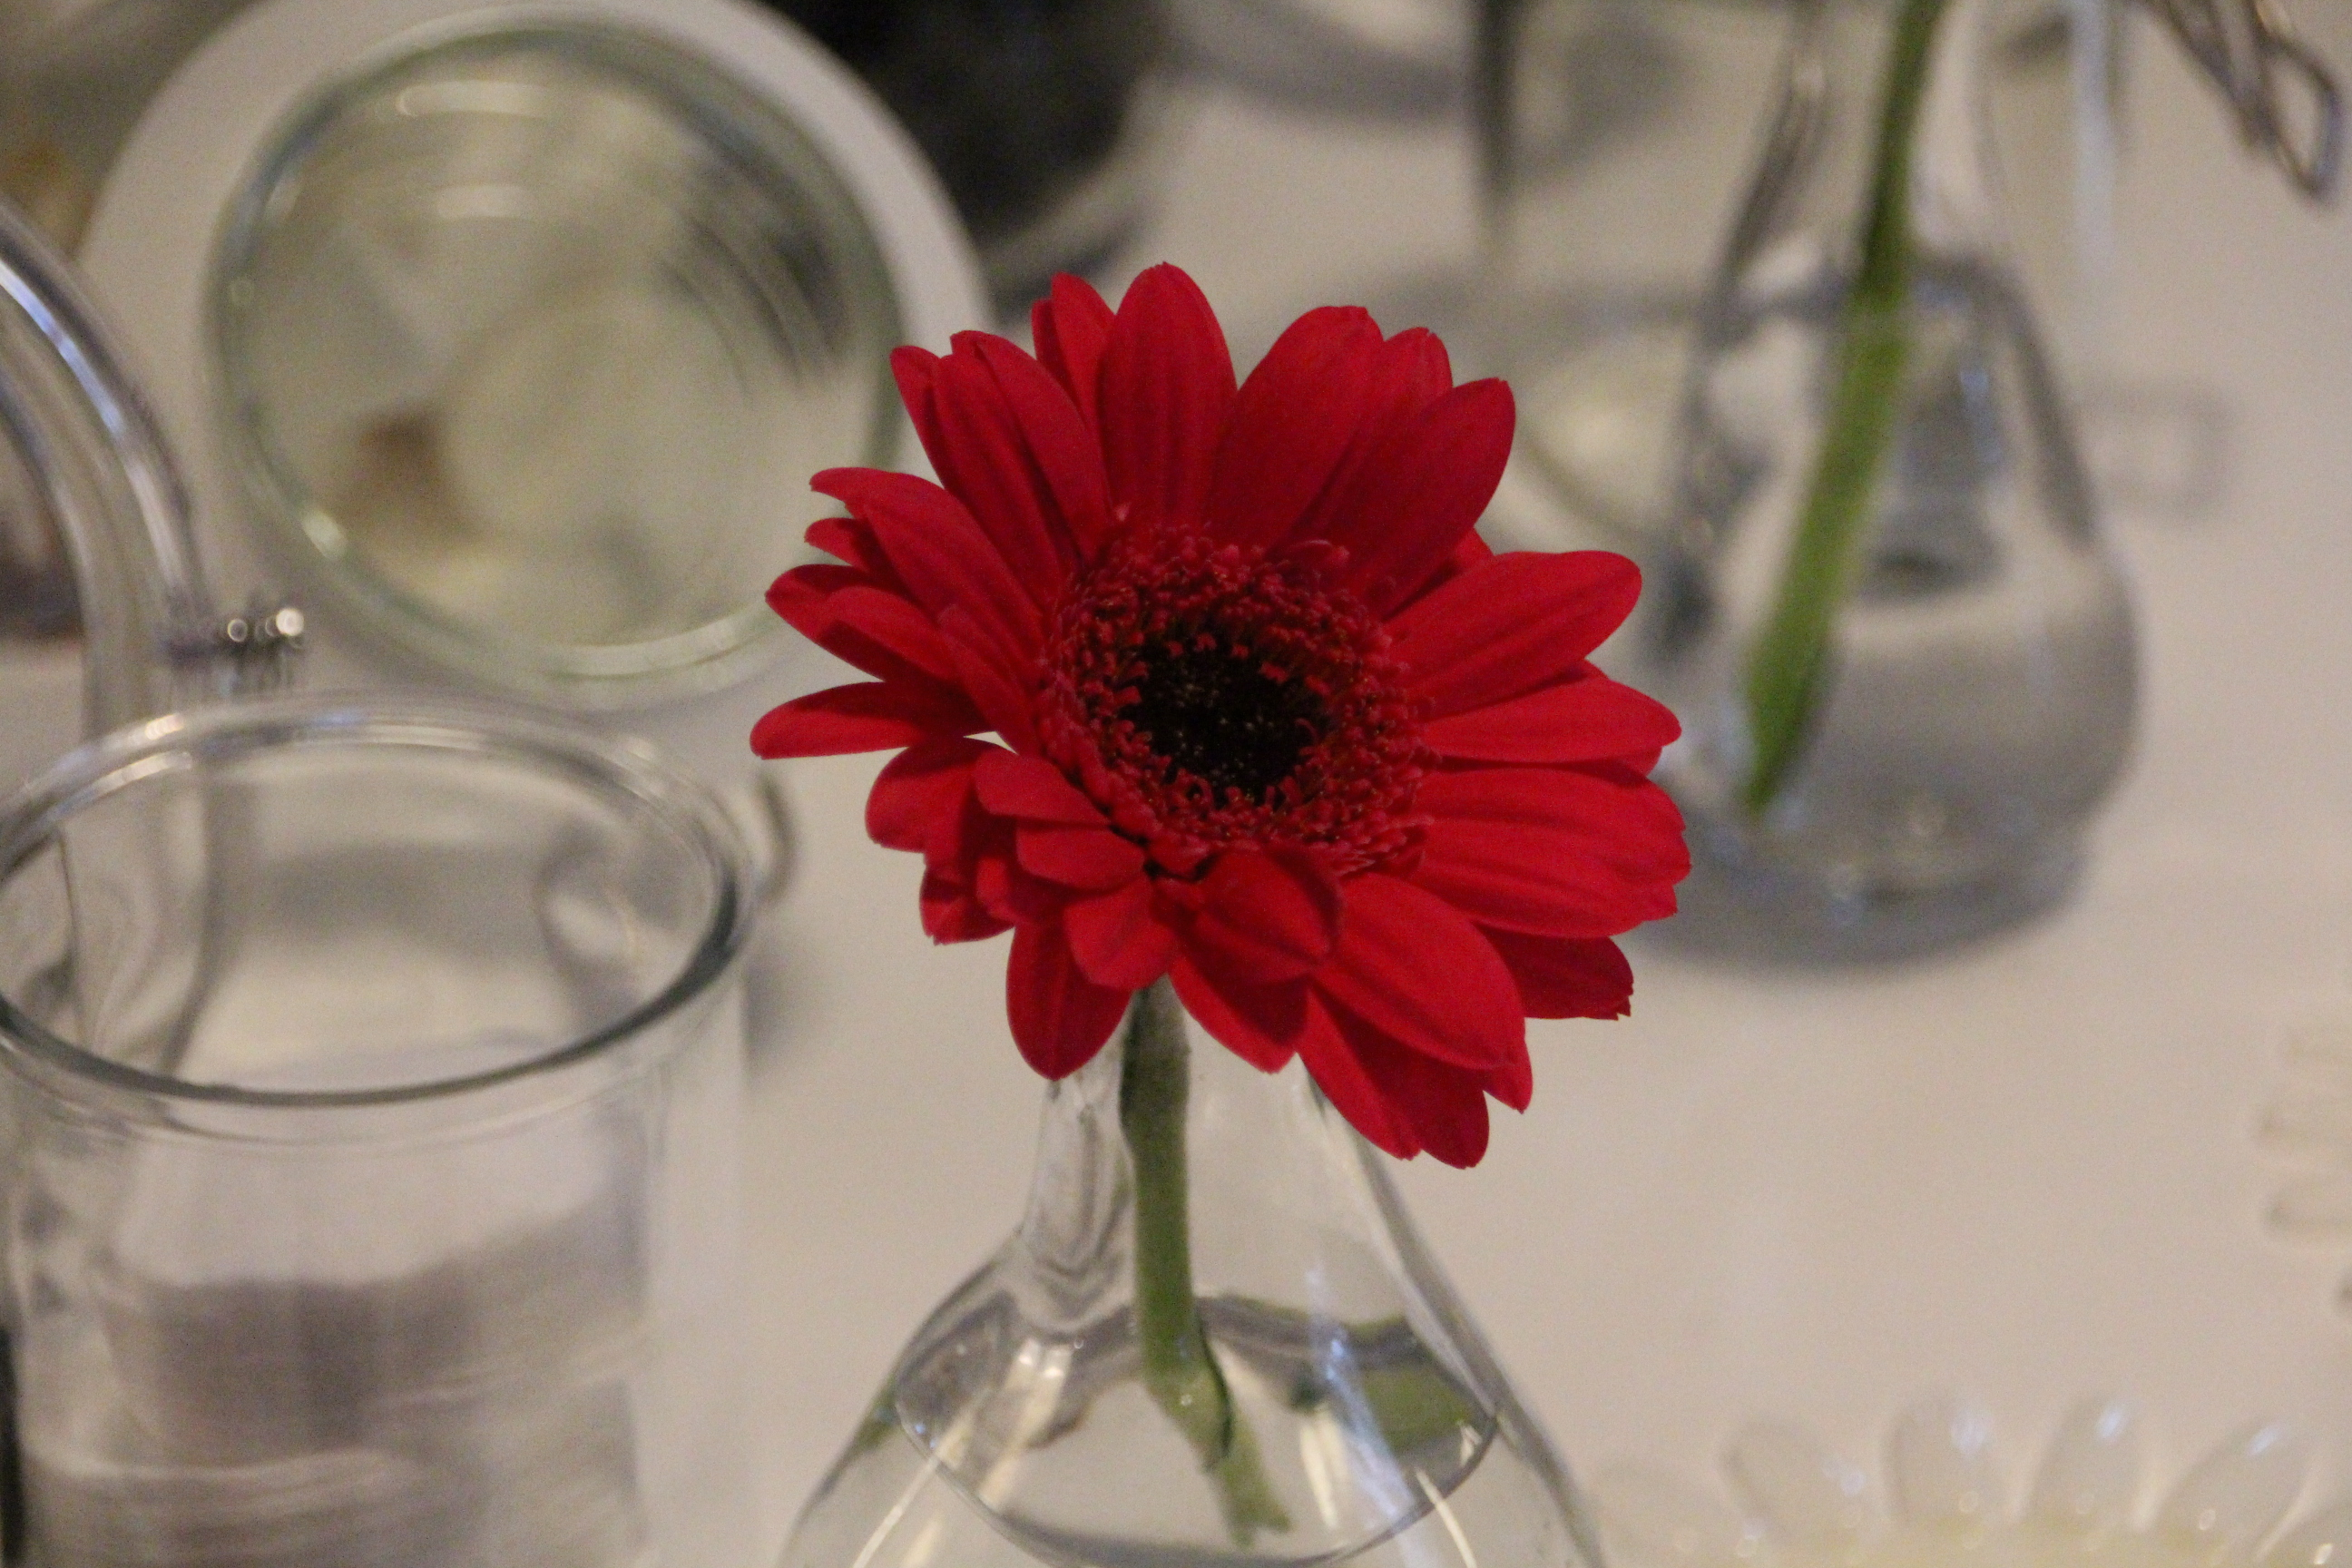 Event: Beauty-Blogger-Cafè im Oktober 2015 #BBC2015